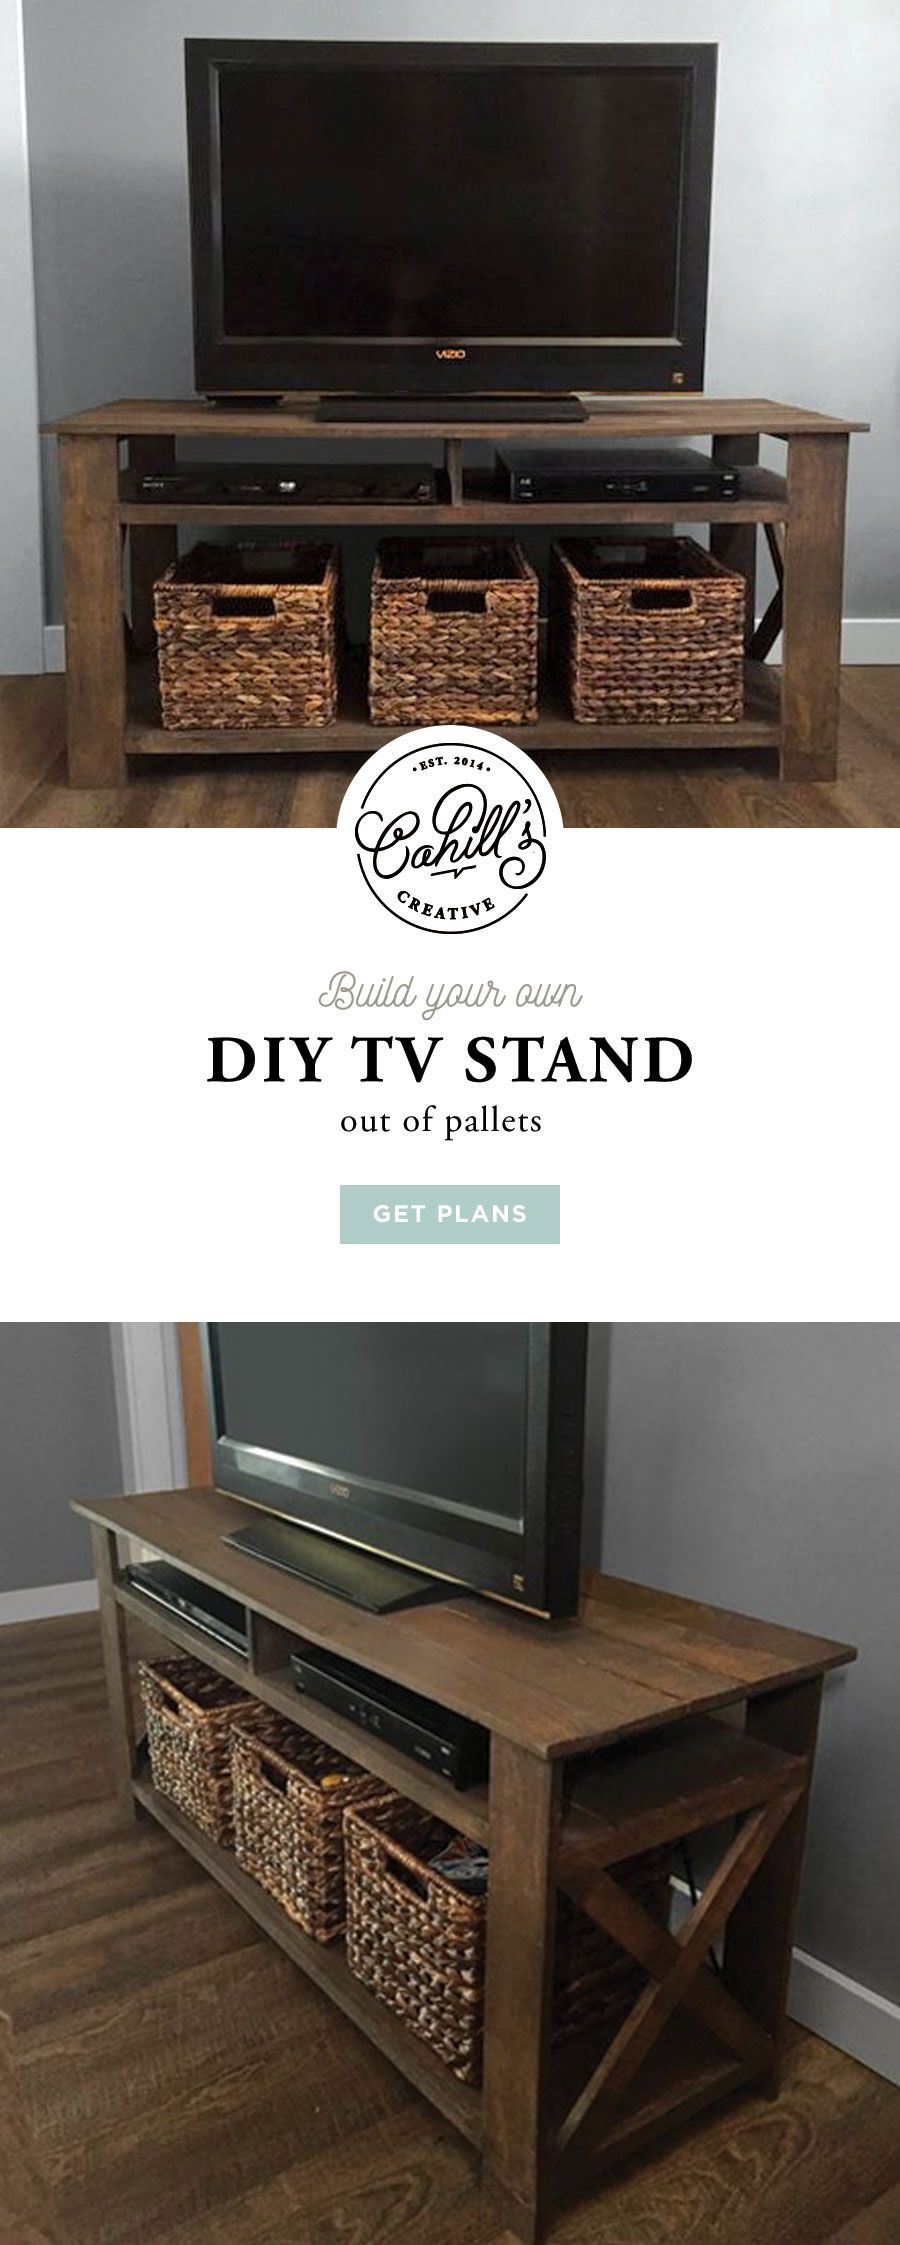 50+ Creative DIY TV Stand Ideas for Your Room Interior | Diy tv ...